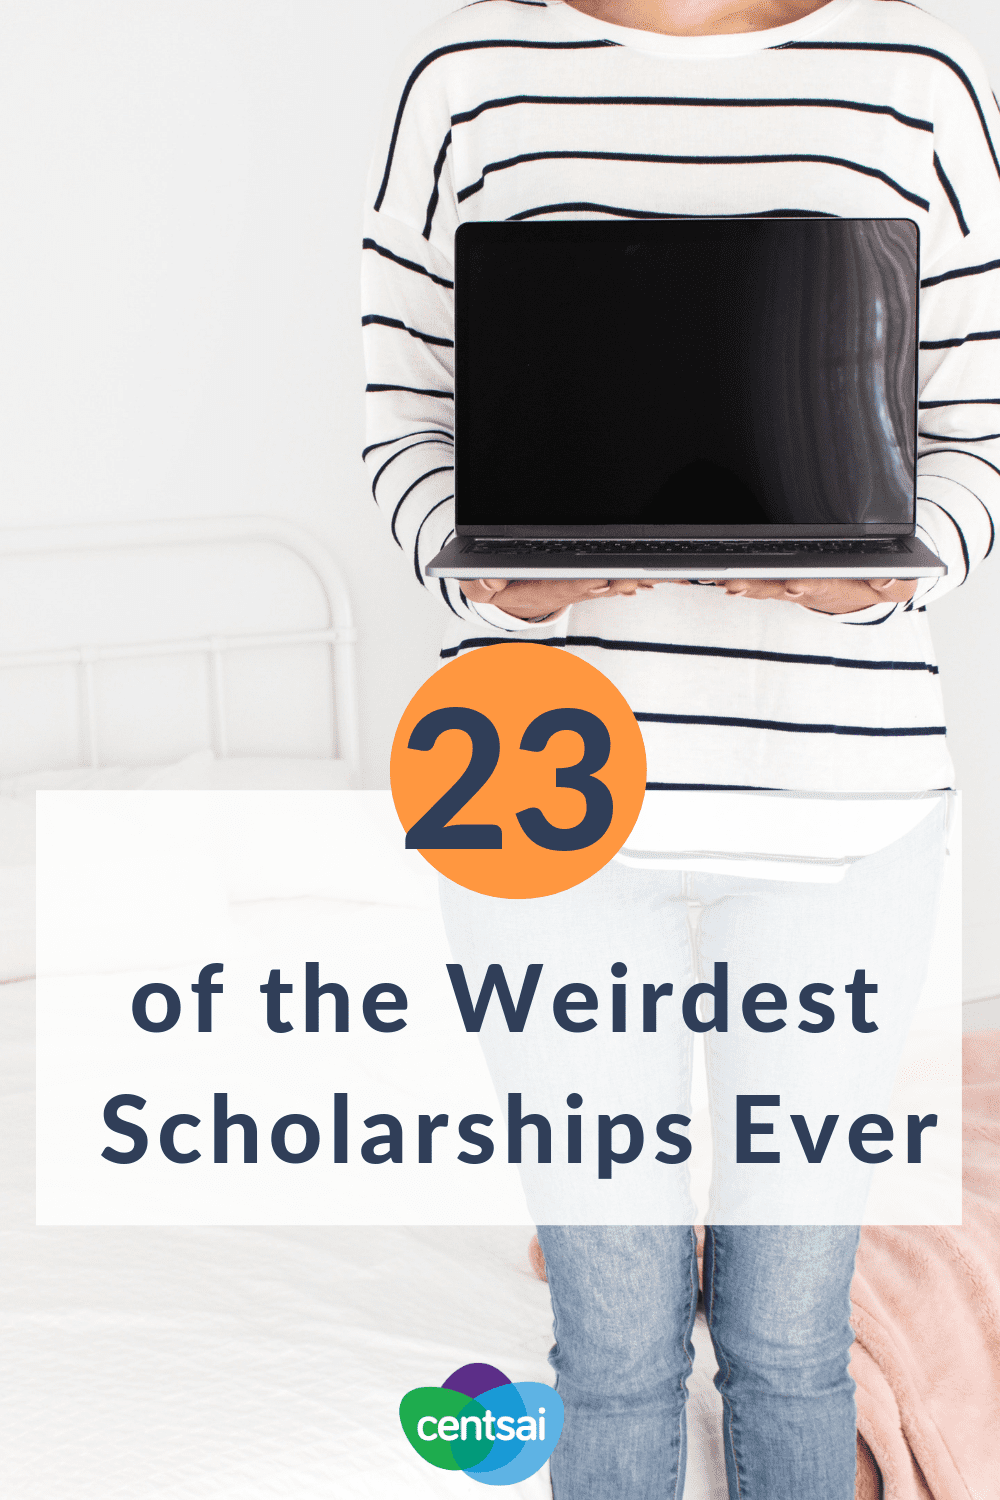 23 of the Weirdest Scholarships Ever. Need financial aid to afford college? Don't limit yourself to normal options. Think outside the box and apply to these weird scholarships. #scholarships #student #millennials